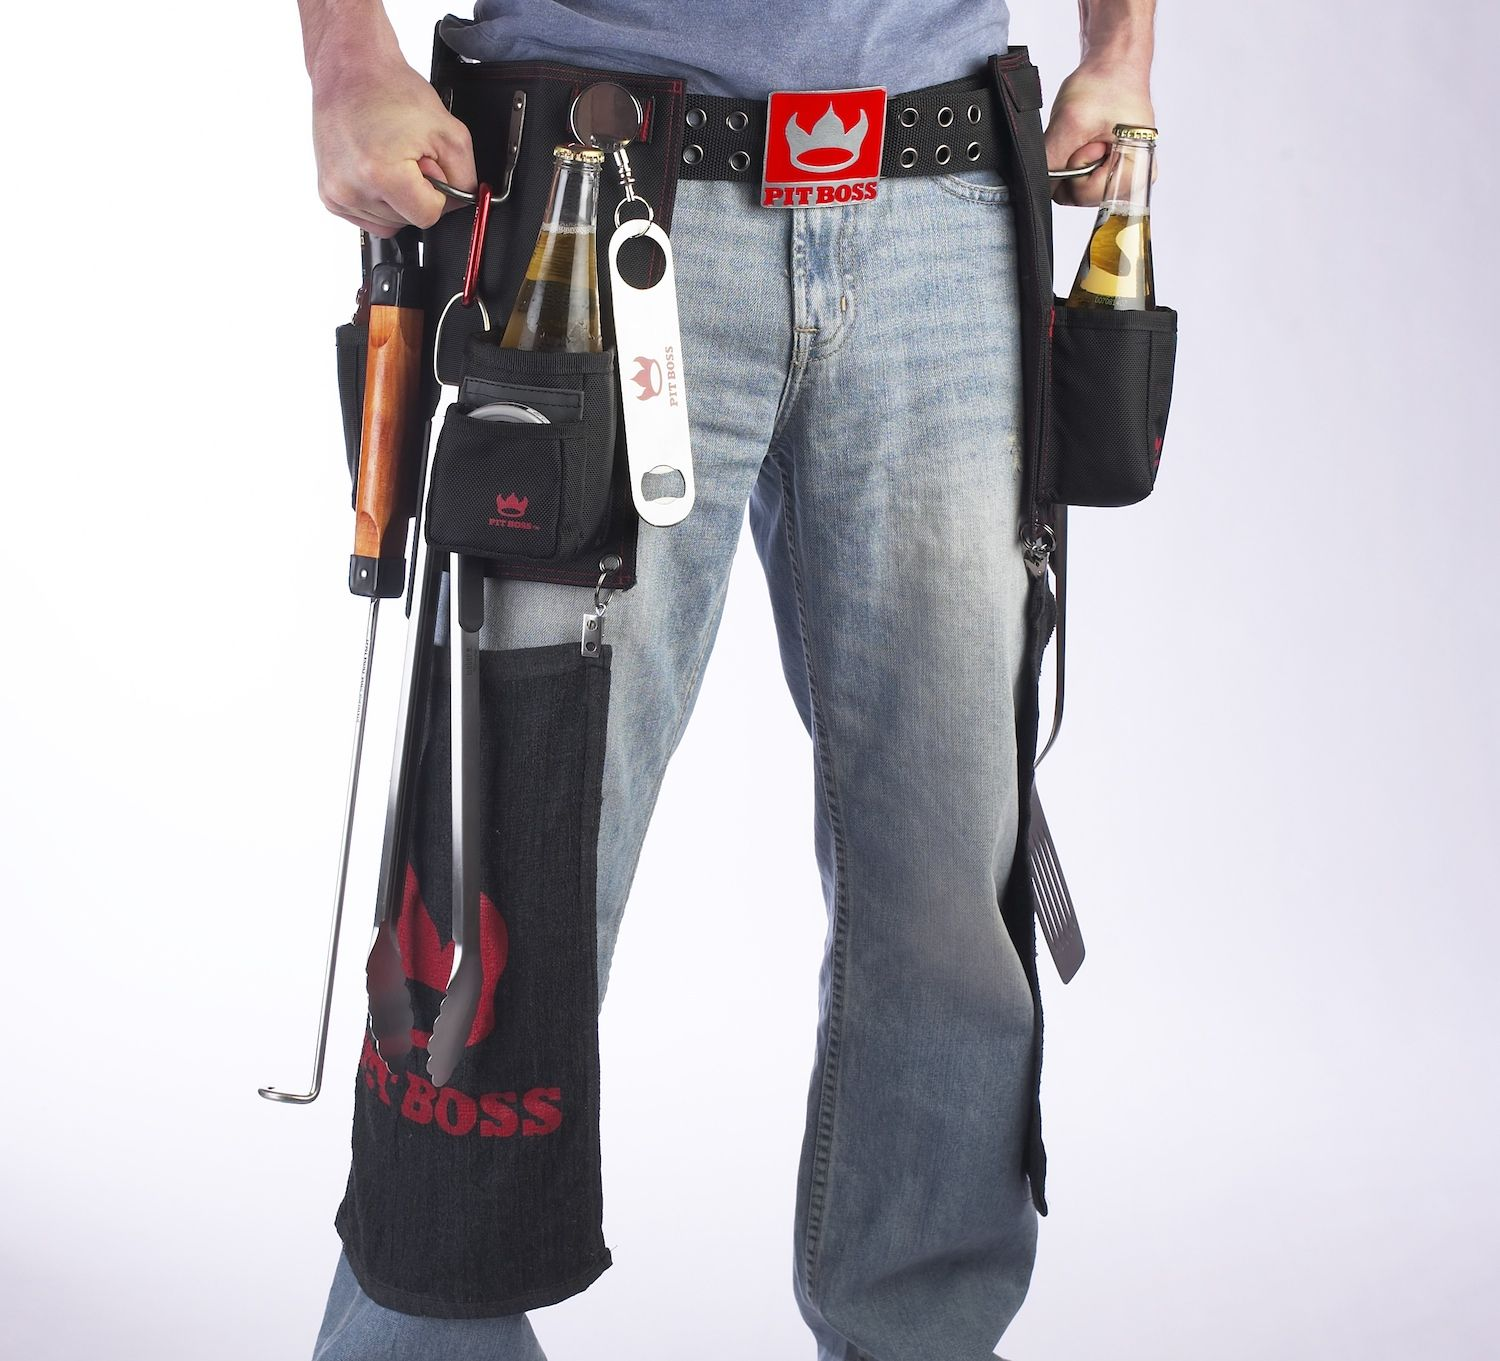 One of the Most Unique, Functional and Coolest Gifts for Men - The Pit Boss Barbecue Tool Belt